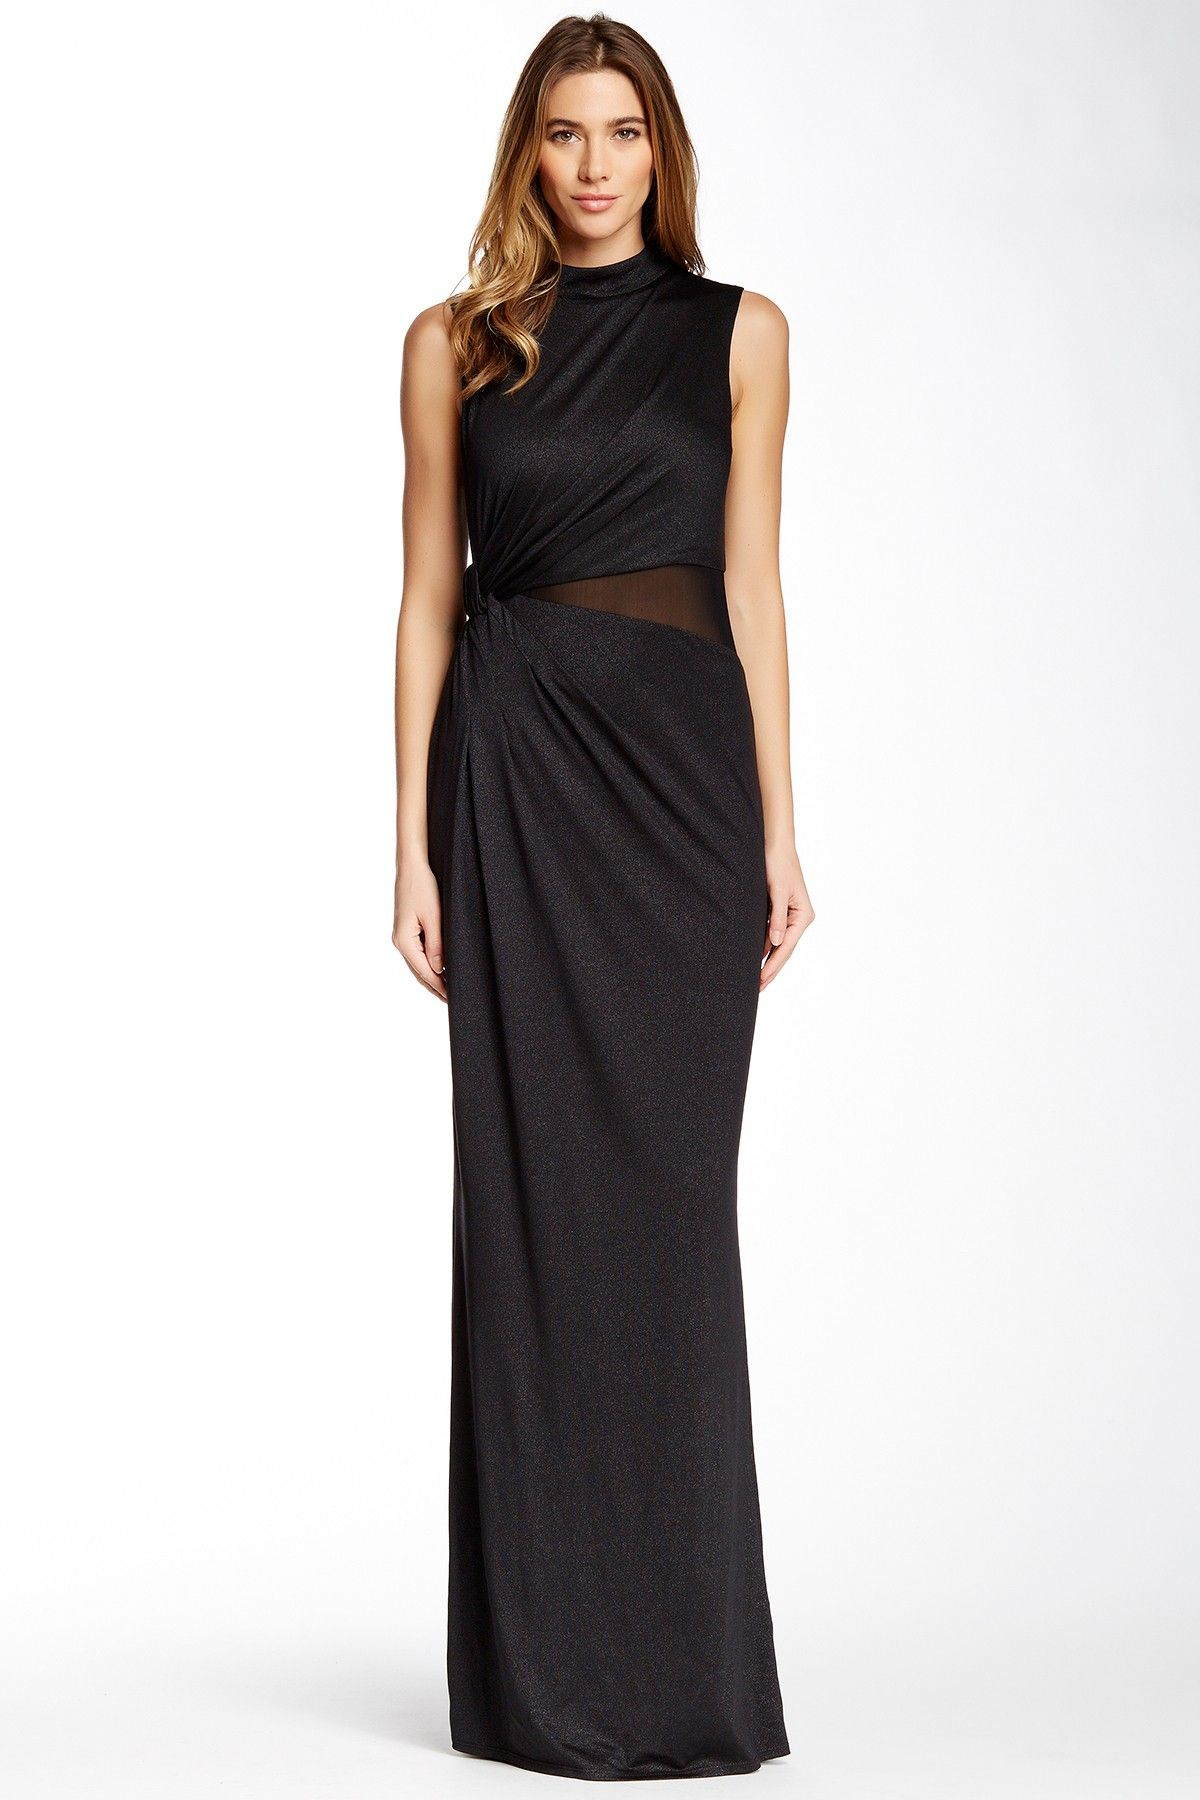 Turtleneck Gown   Bison Ball   Pinterest   Nordstrom, Gowns and Clothing